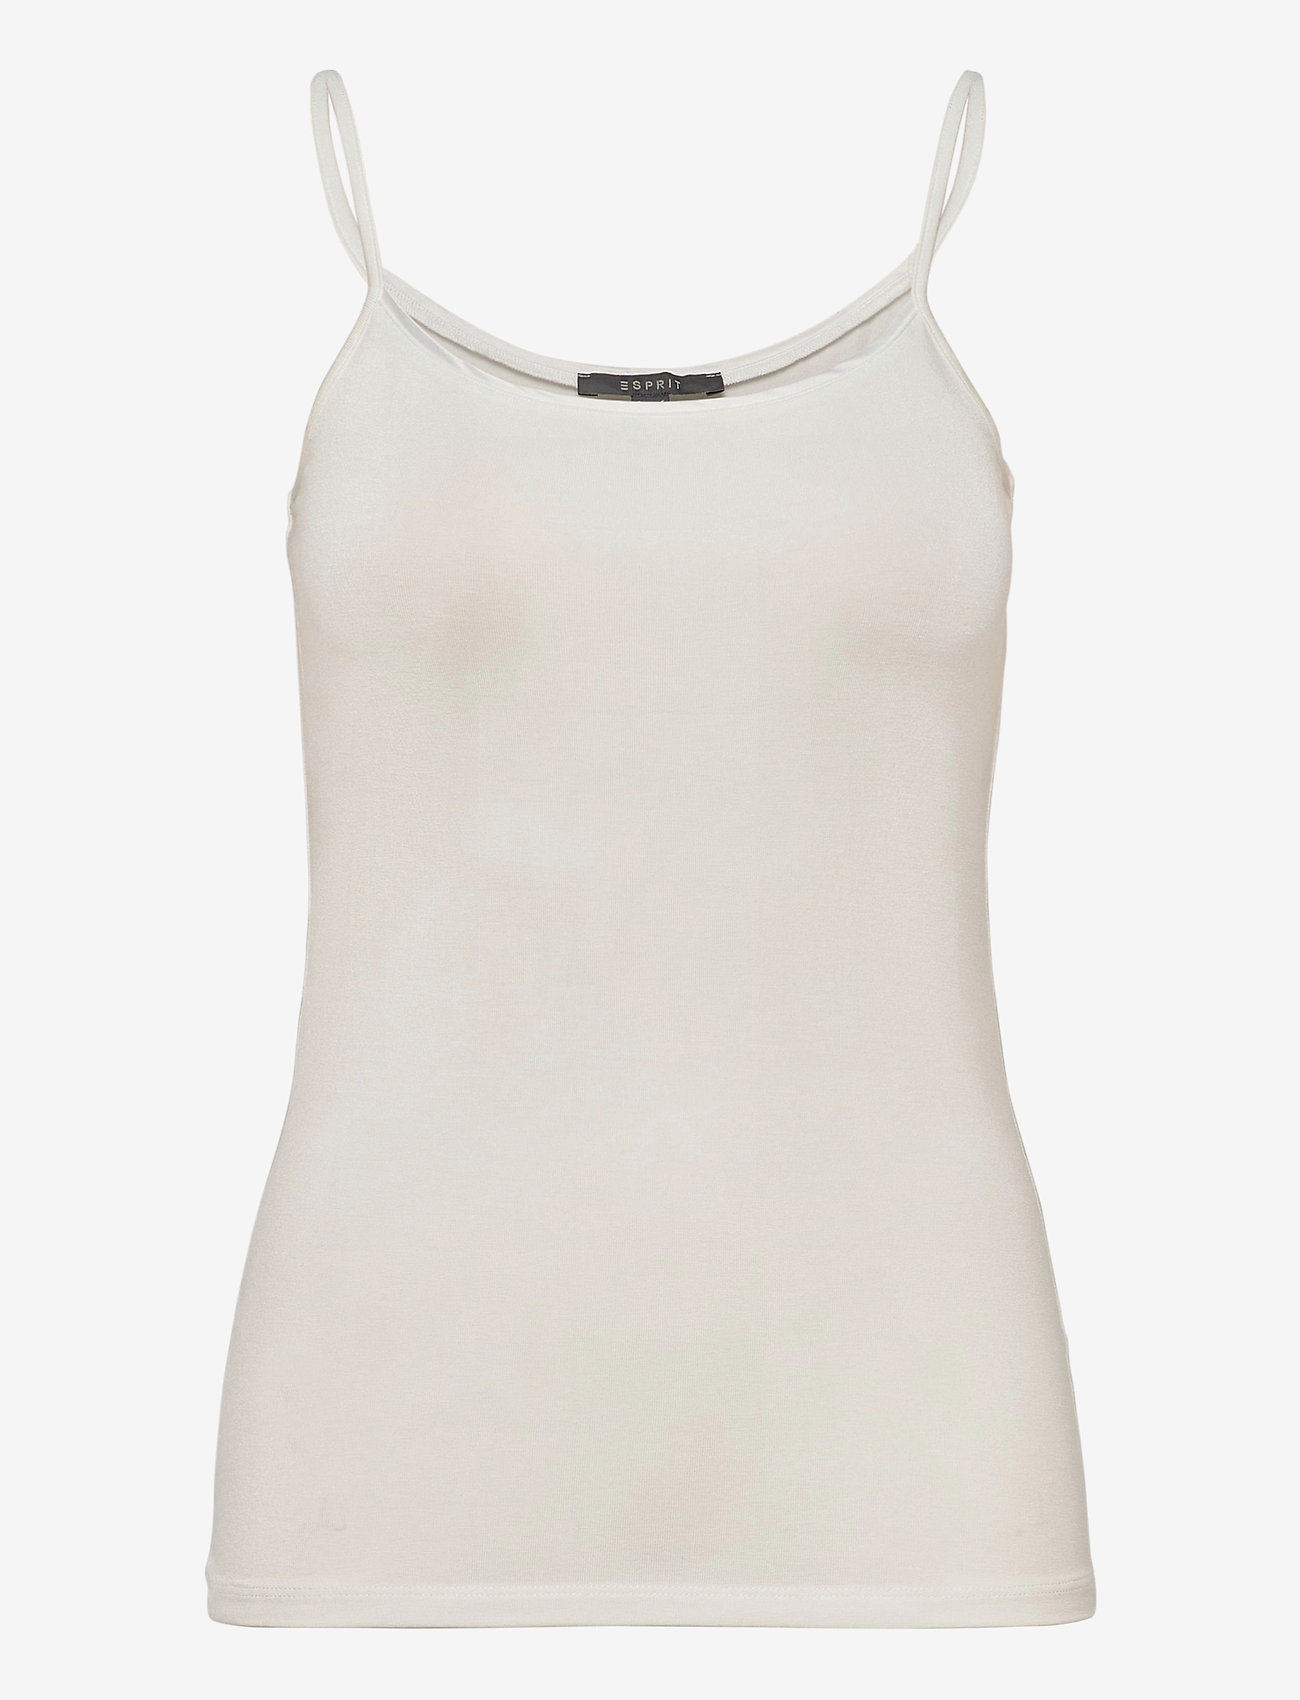 Esprit Collection - T-Shirts - t-shirt & tops - off white - 0